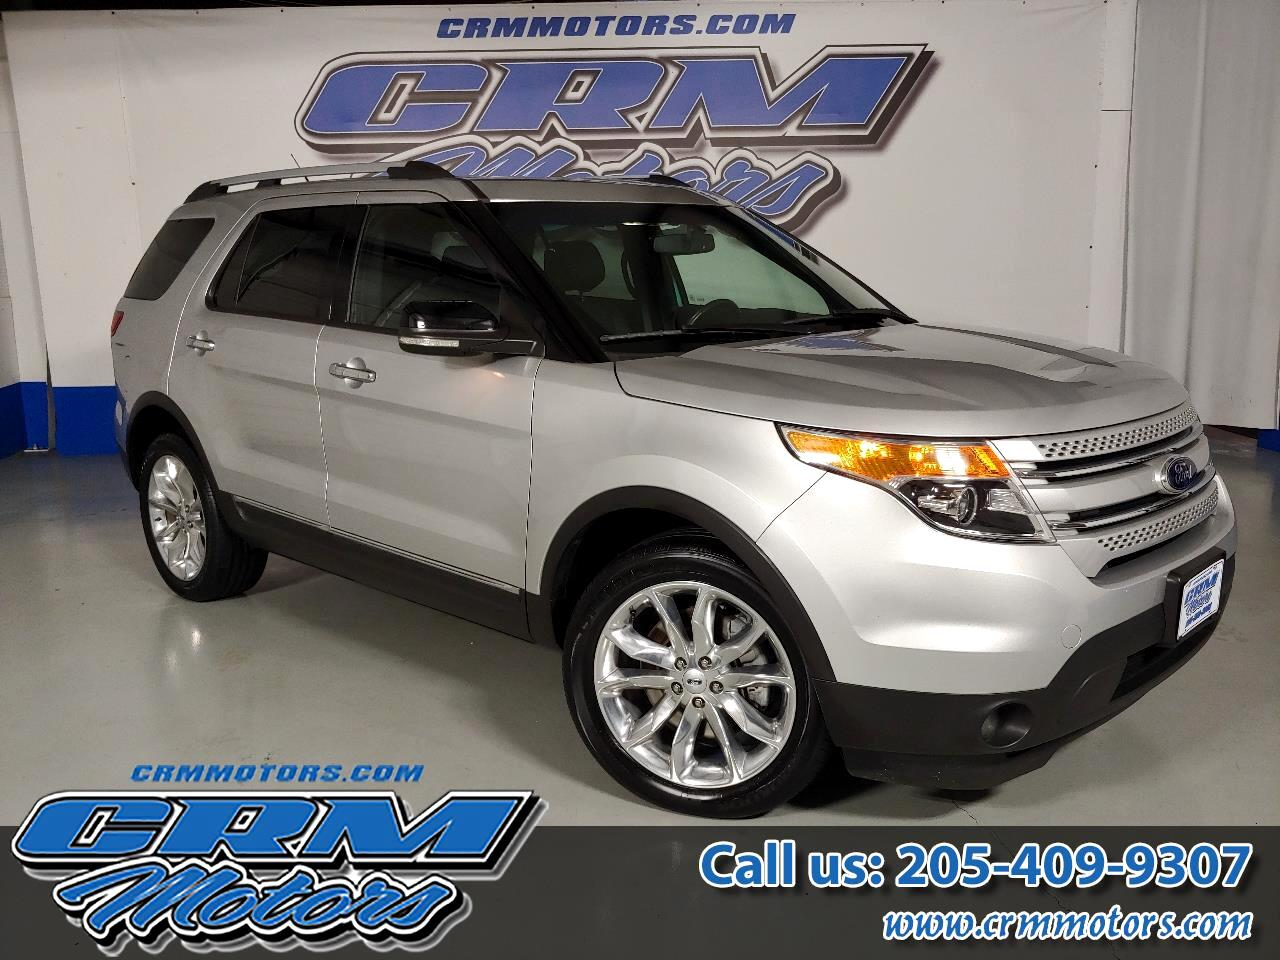 2015 Ford Explorer 4WD, XLT, LEATHER, 50K MILES, WOW!